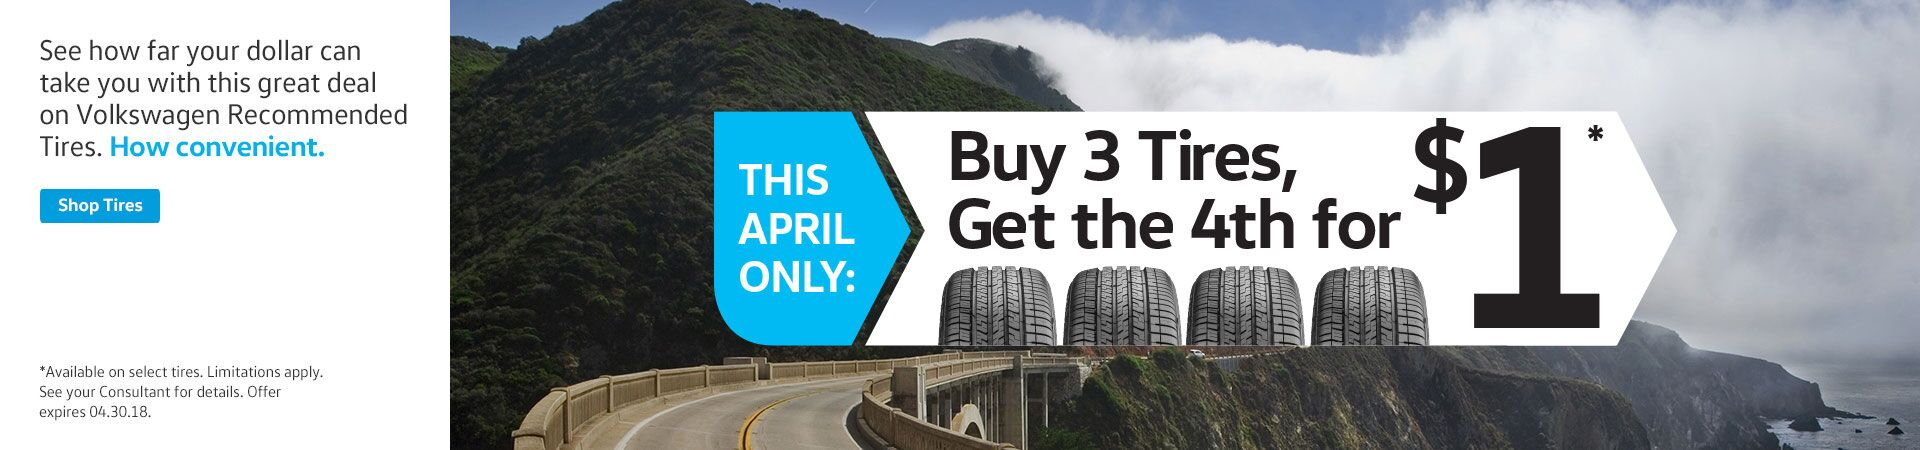 April Tire Promotion Offer